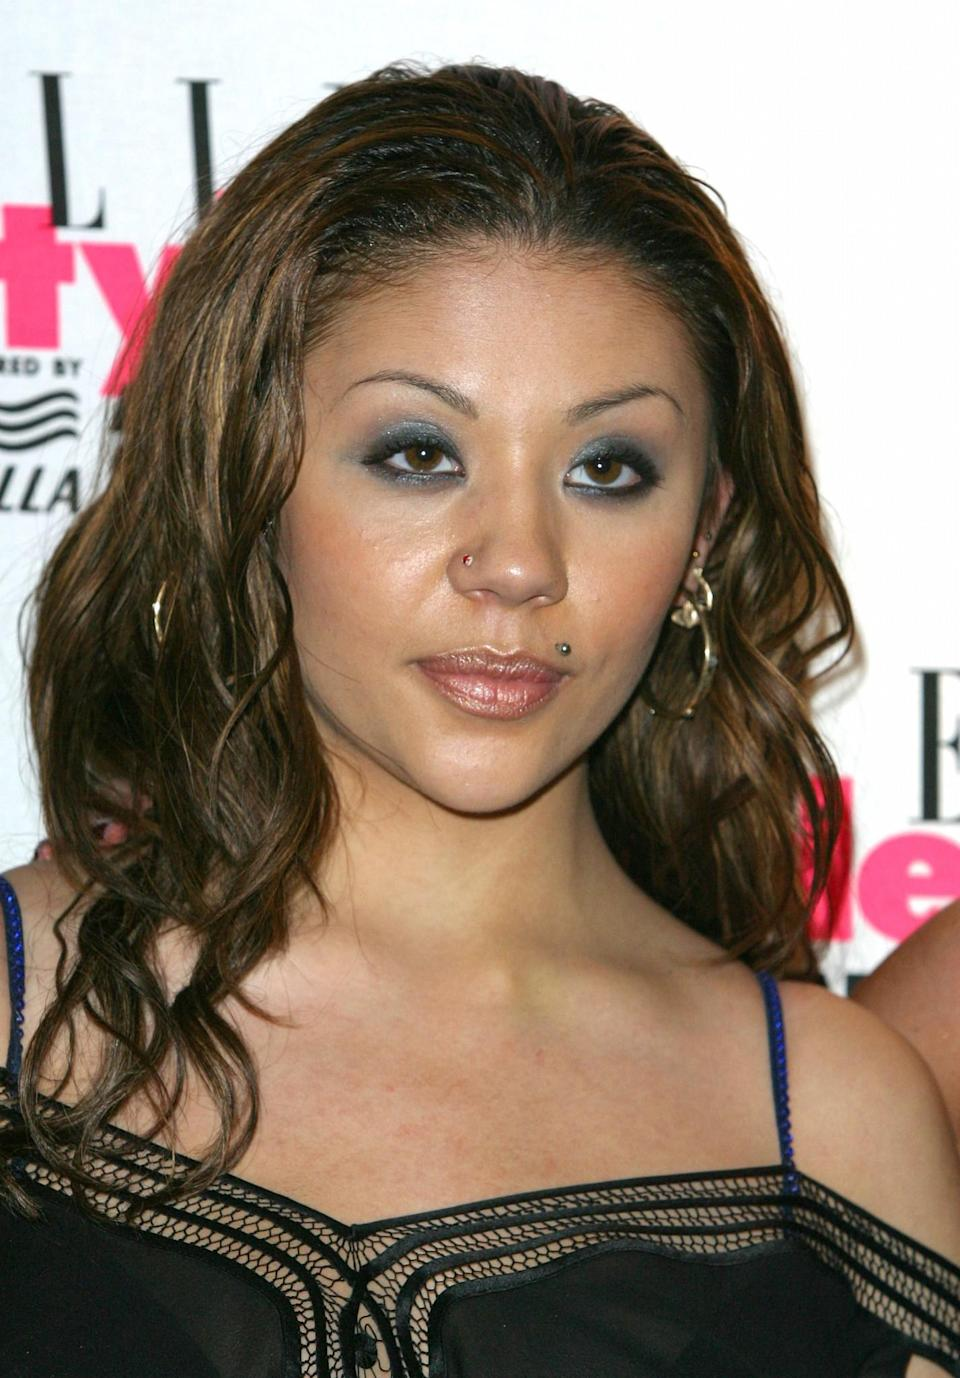 <p>Then: Mutya was easily one of the most quirkiest members of the Sugababes with several piercings and a kooky dress sense. [Photo: Getty] </p>